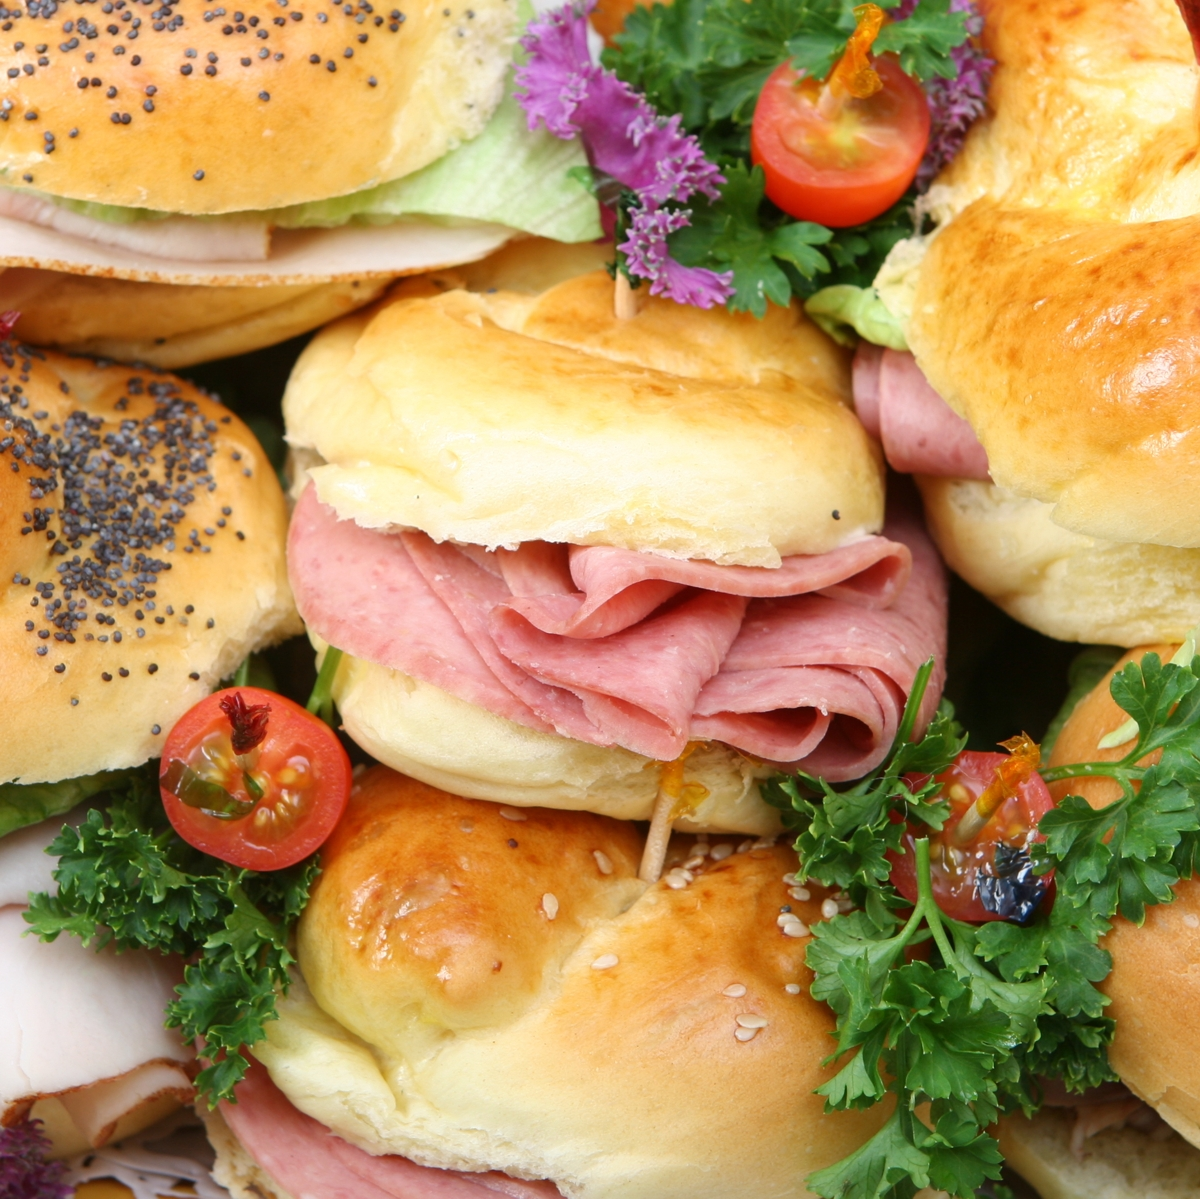 Stacks of catering possibilities. This image show some delicious bite sandwiches.